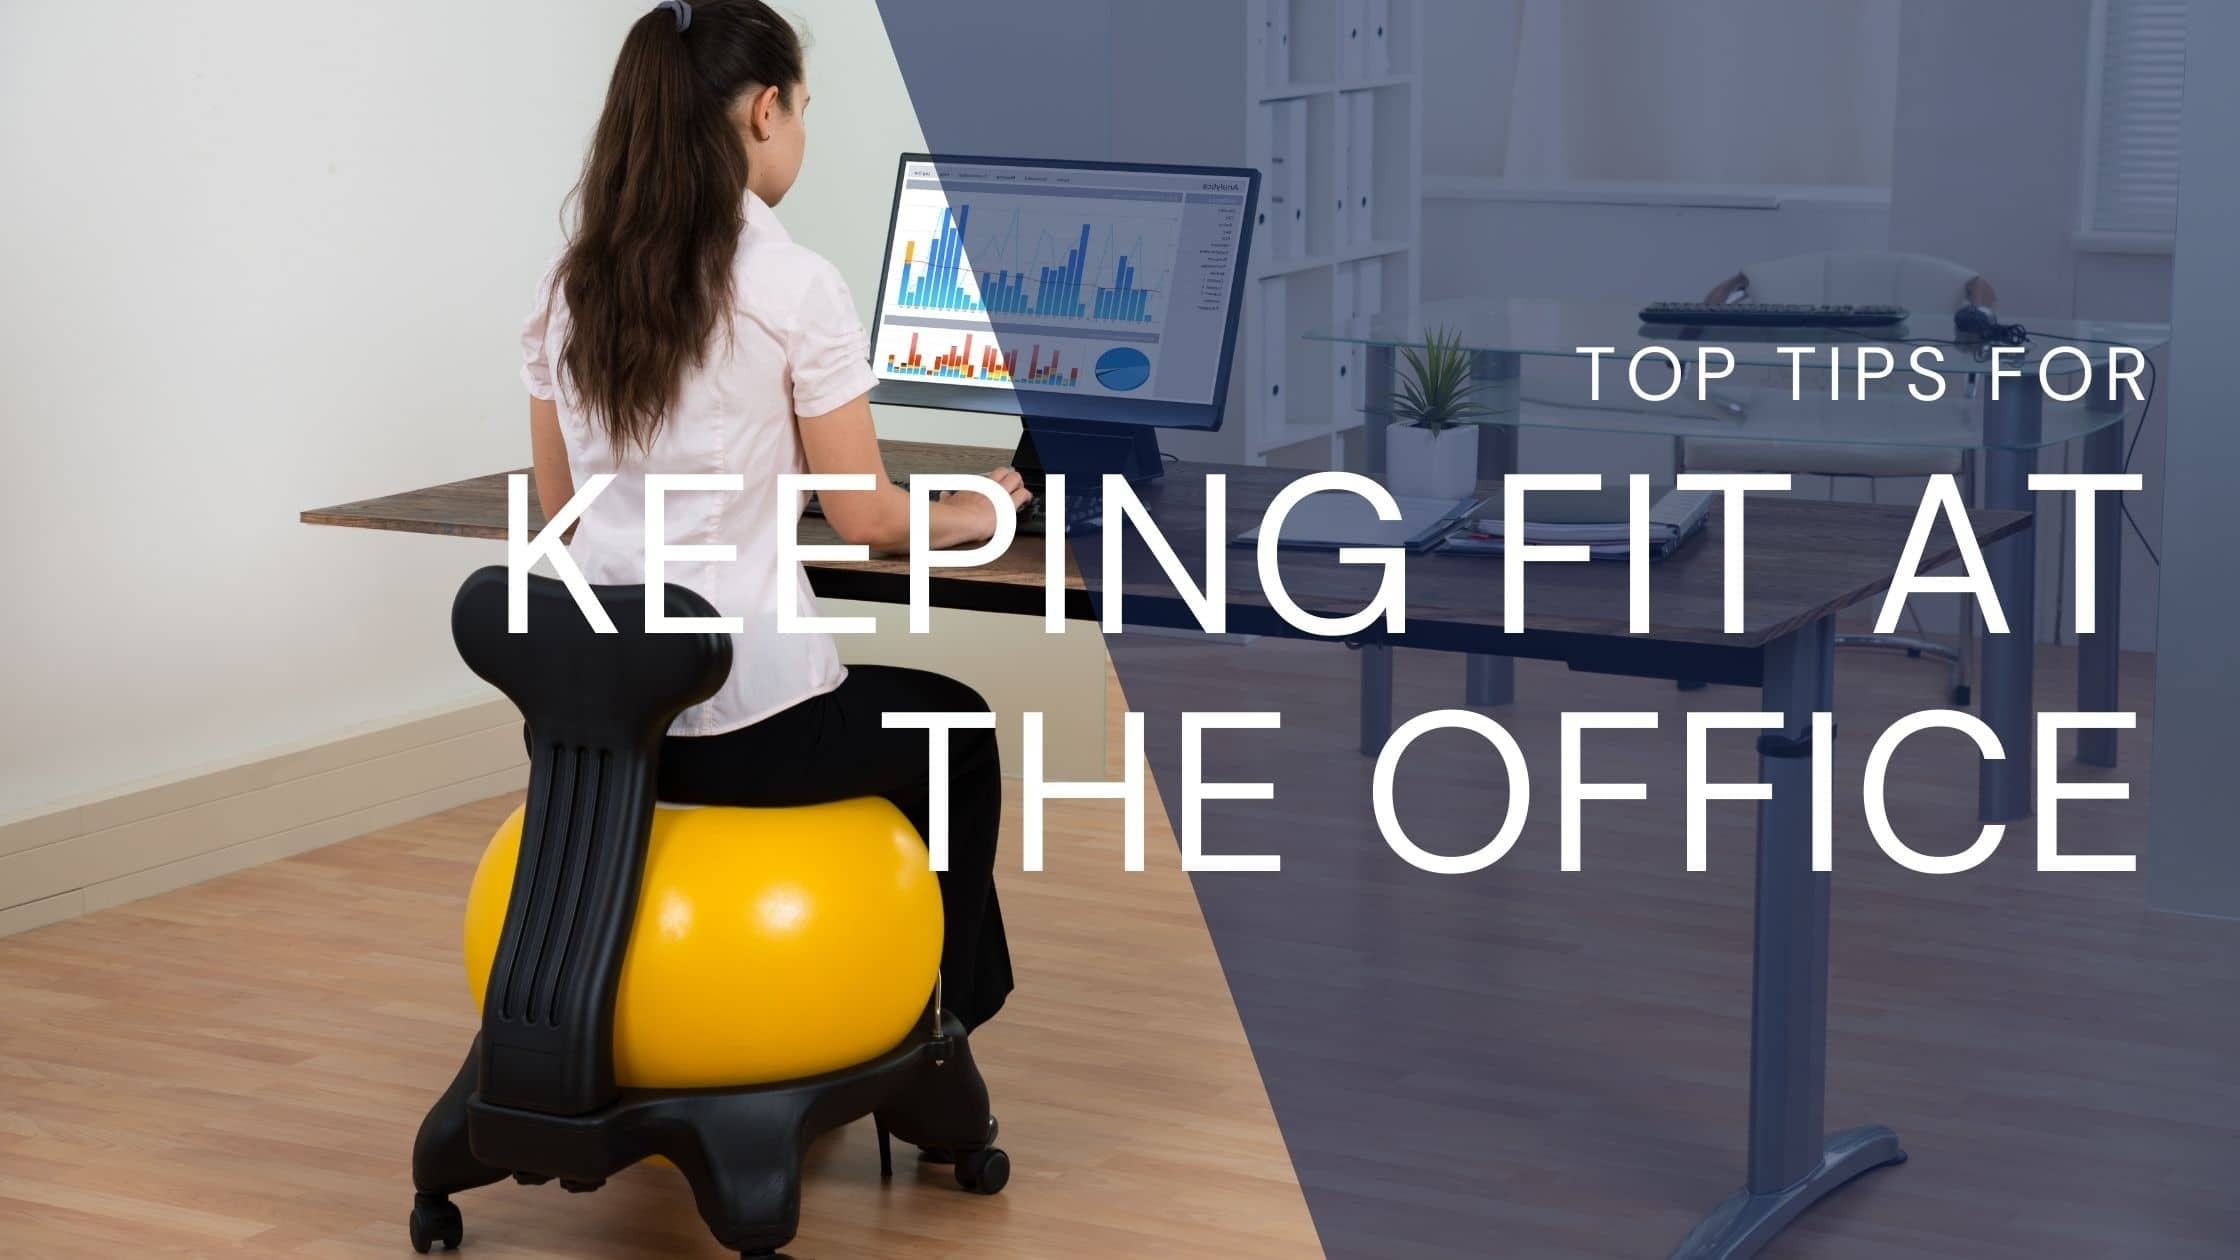 keeping fit at the office